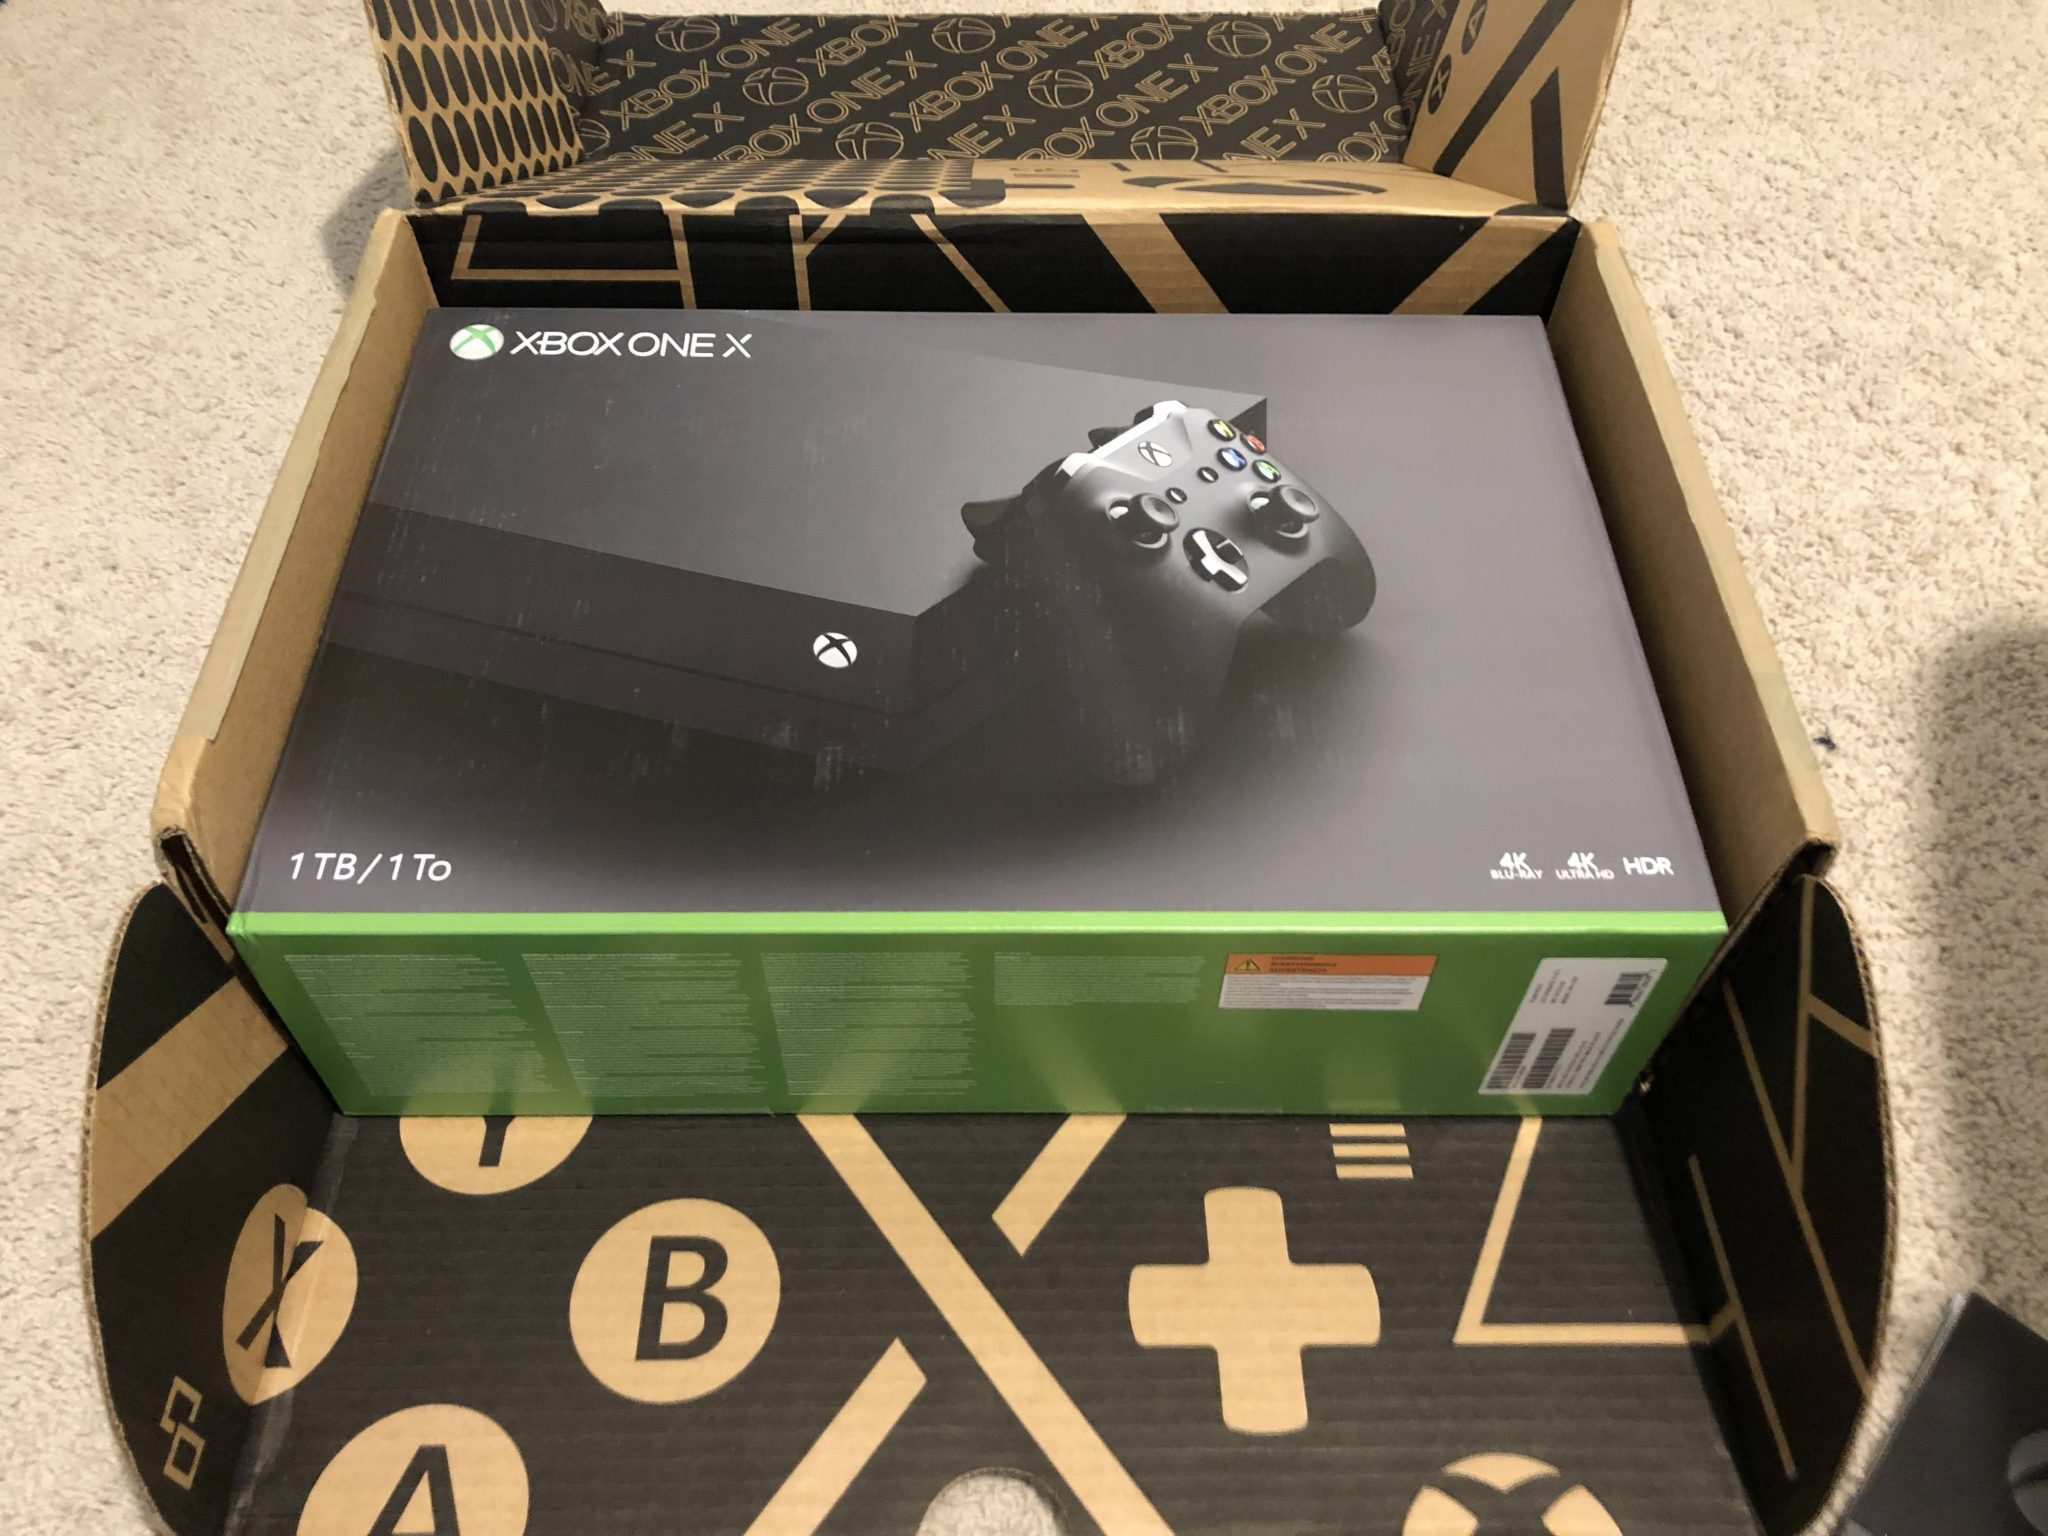 Xbox exec major nelsons secret santa gift was a surprise for this the games that are included in the package are most of the recent releases like call of duty world war ii destiny 2 star wars battlefront 2 among others negle Image collections